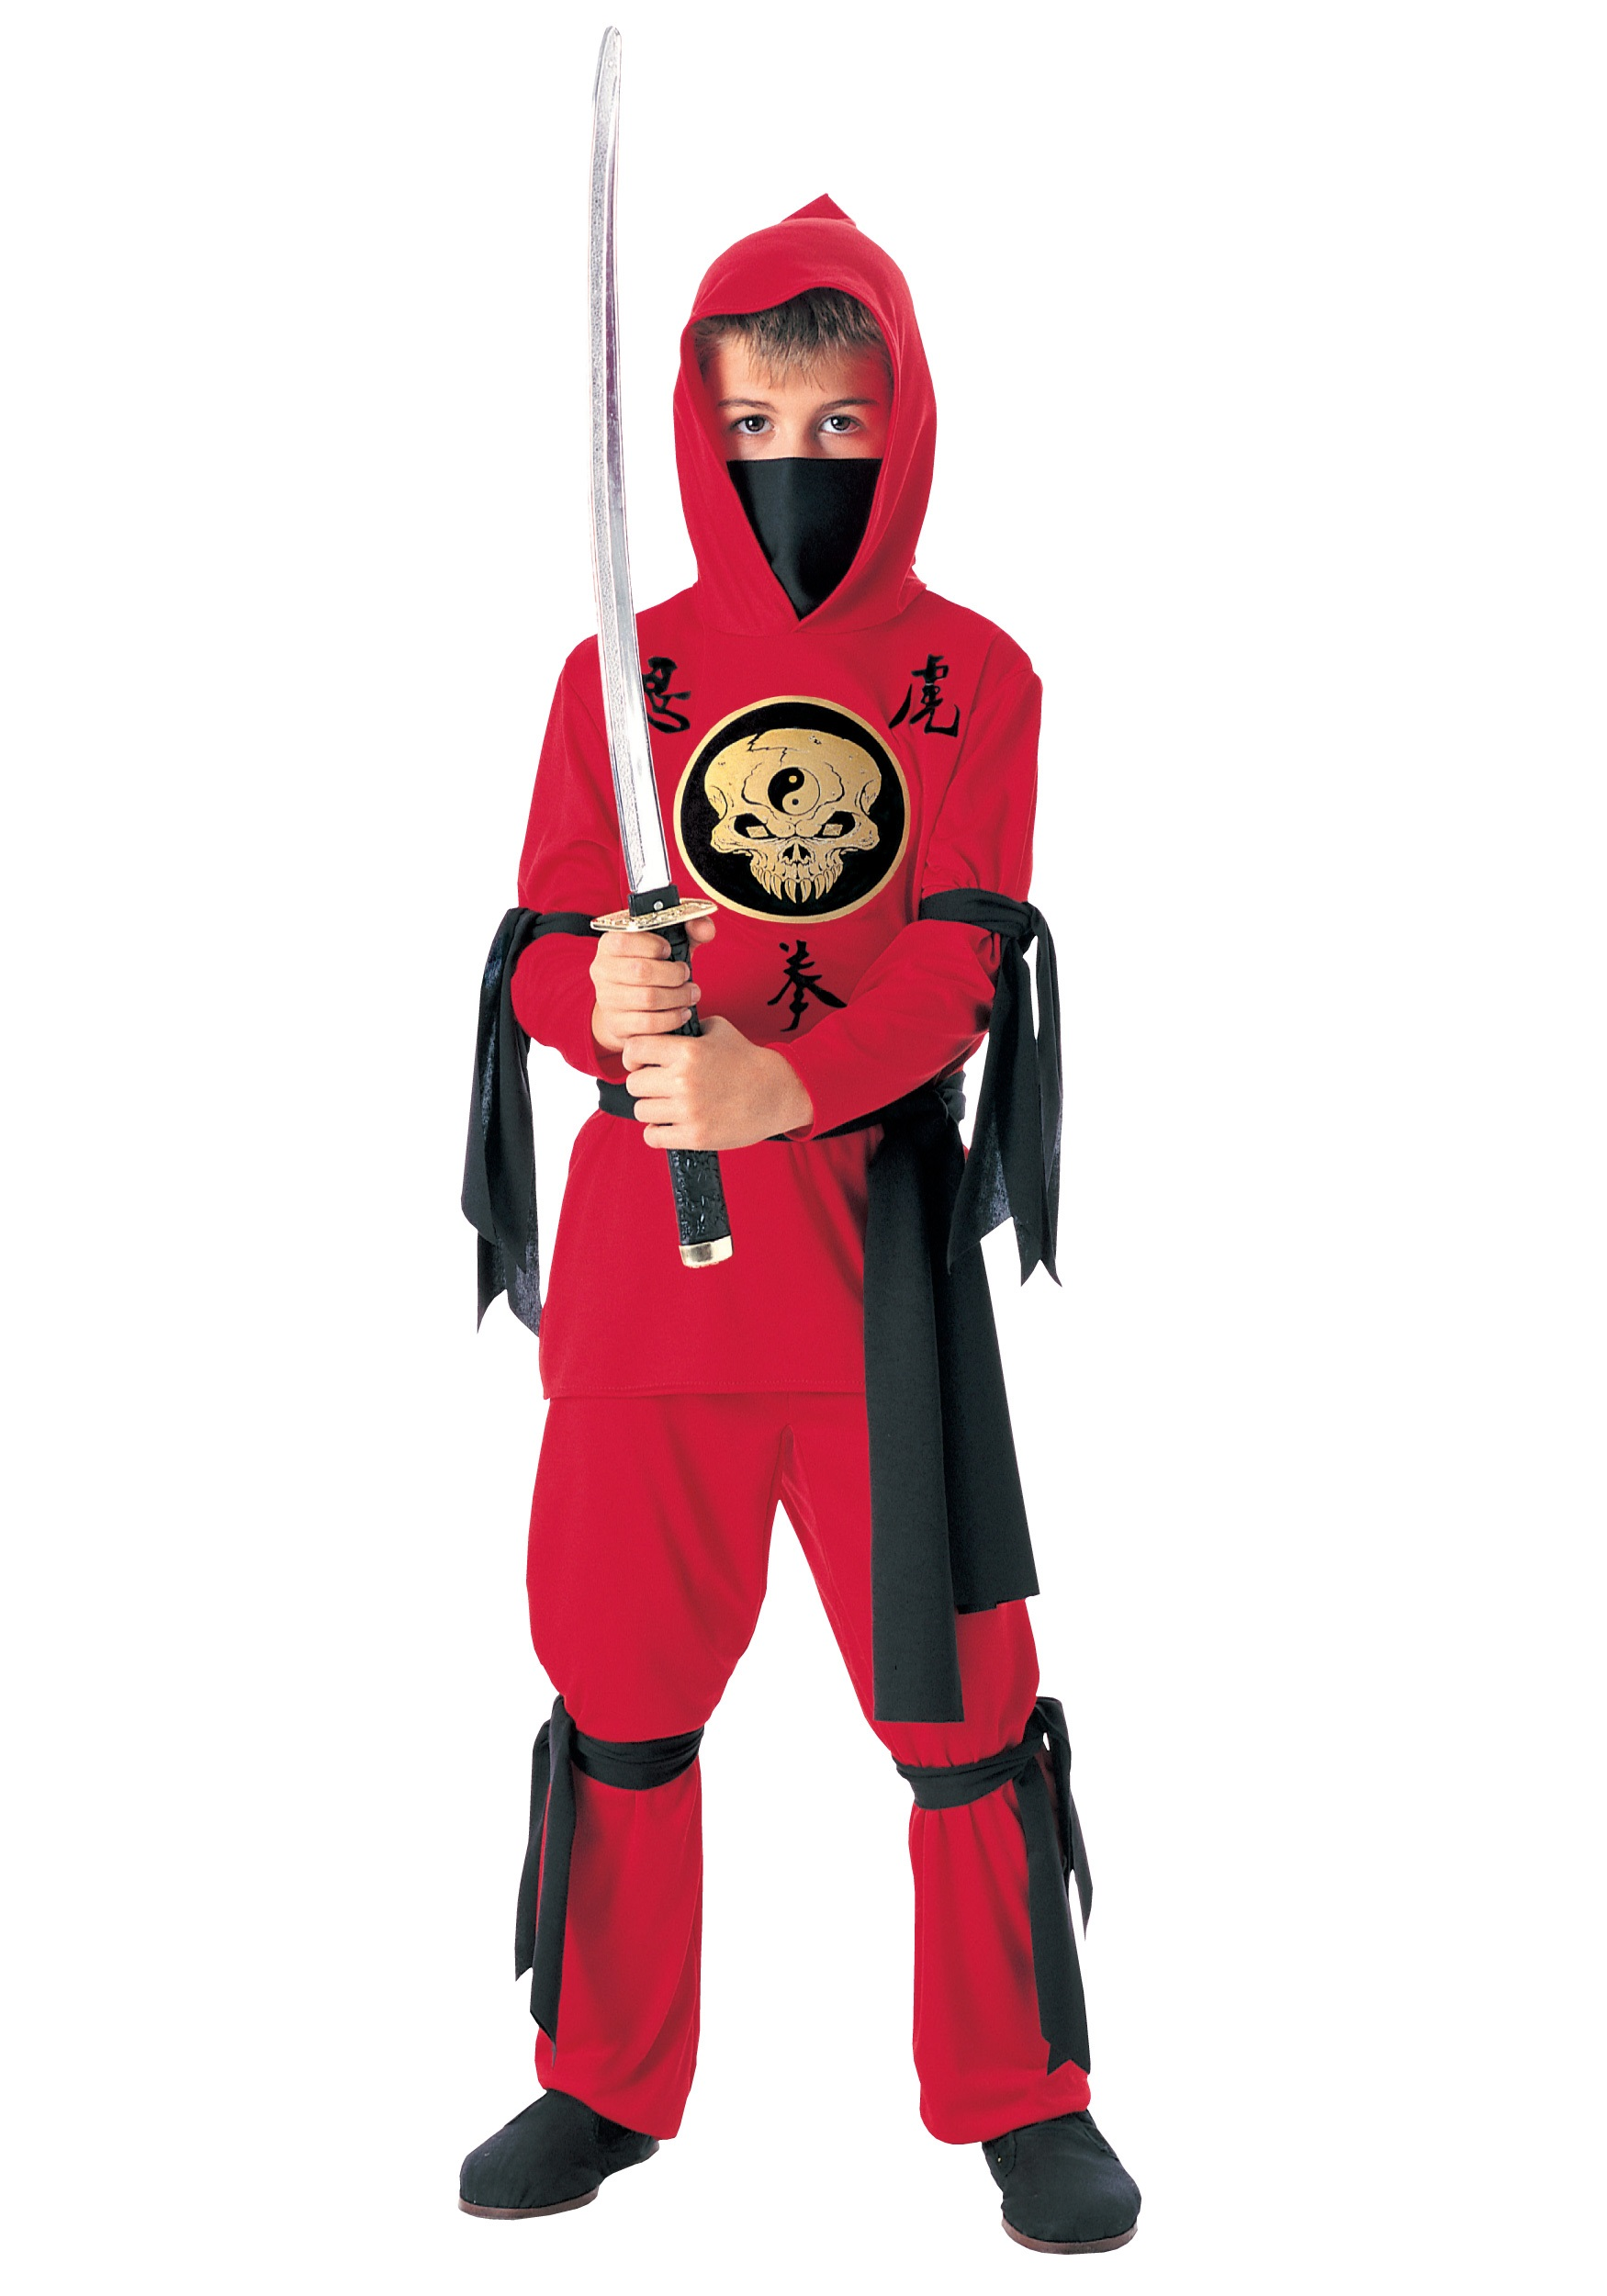 Kids Red Ninja Costume  sc 1 st  Halloween Costumes & Kids Red Ninja Costume - Halloween Costumes